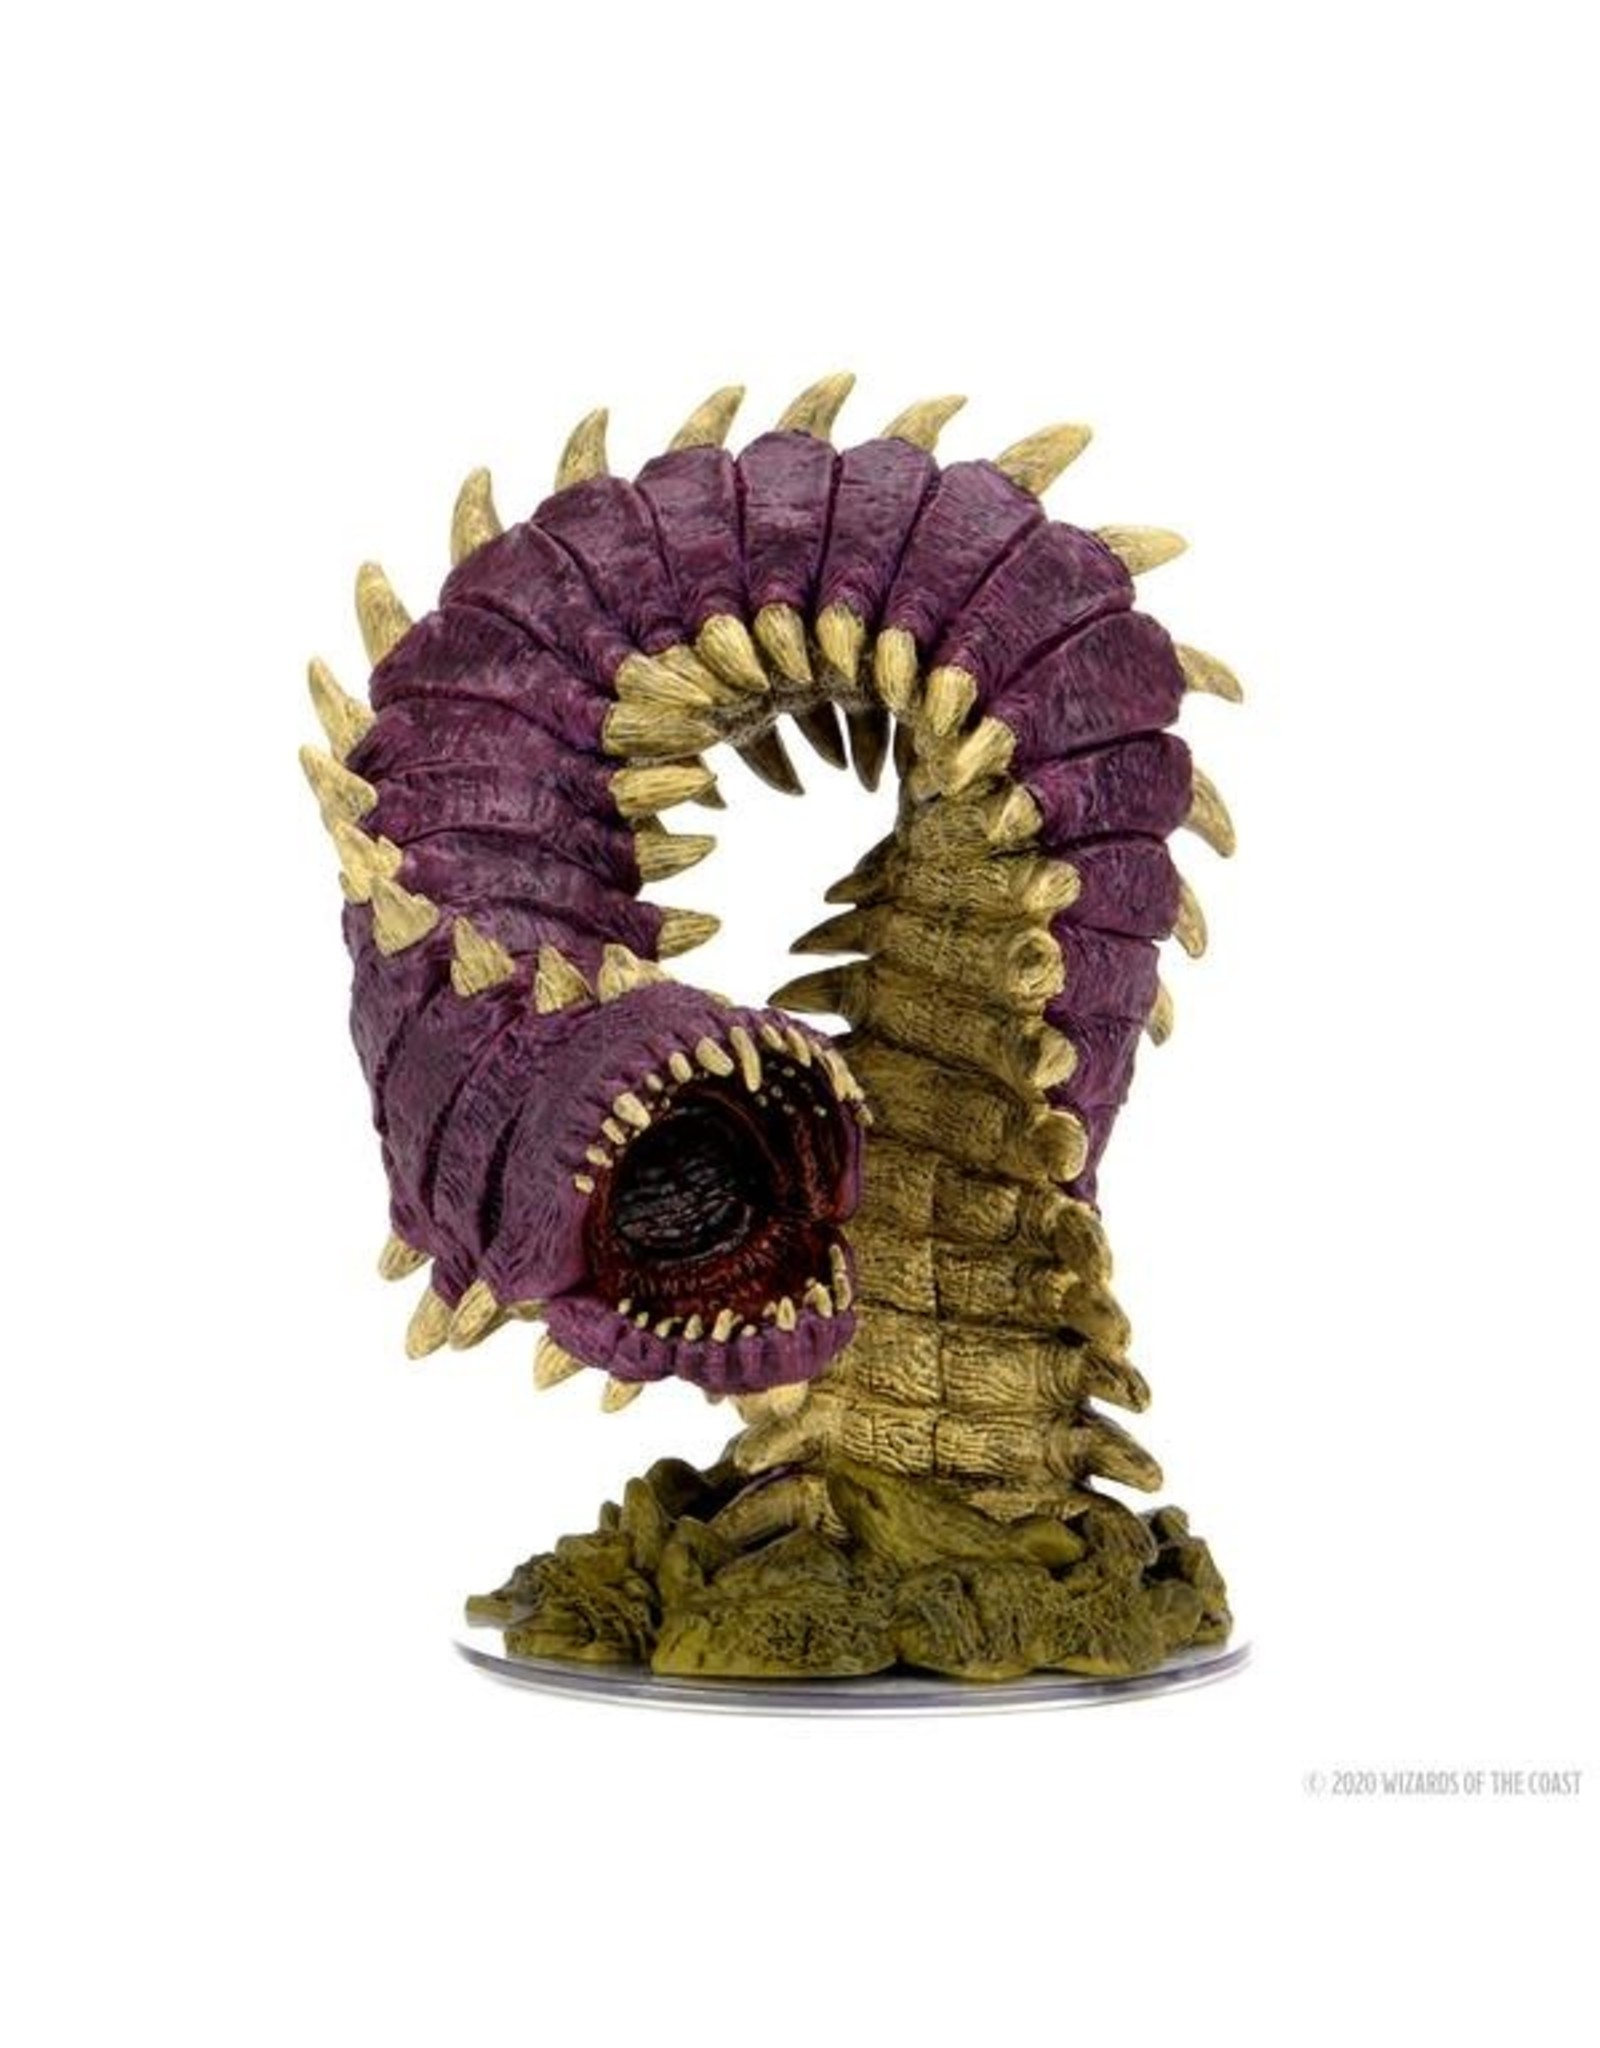 WizKids Dungeons & Dragons Fantasy Miniatures: Icons of the Realms Set 15 Fangs and Talons - Purple Worm Premium